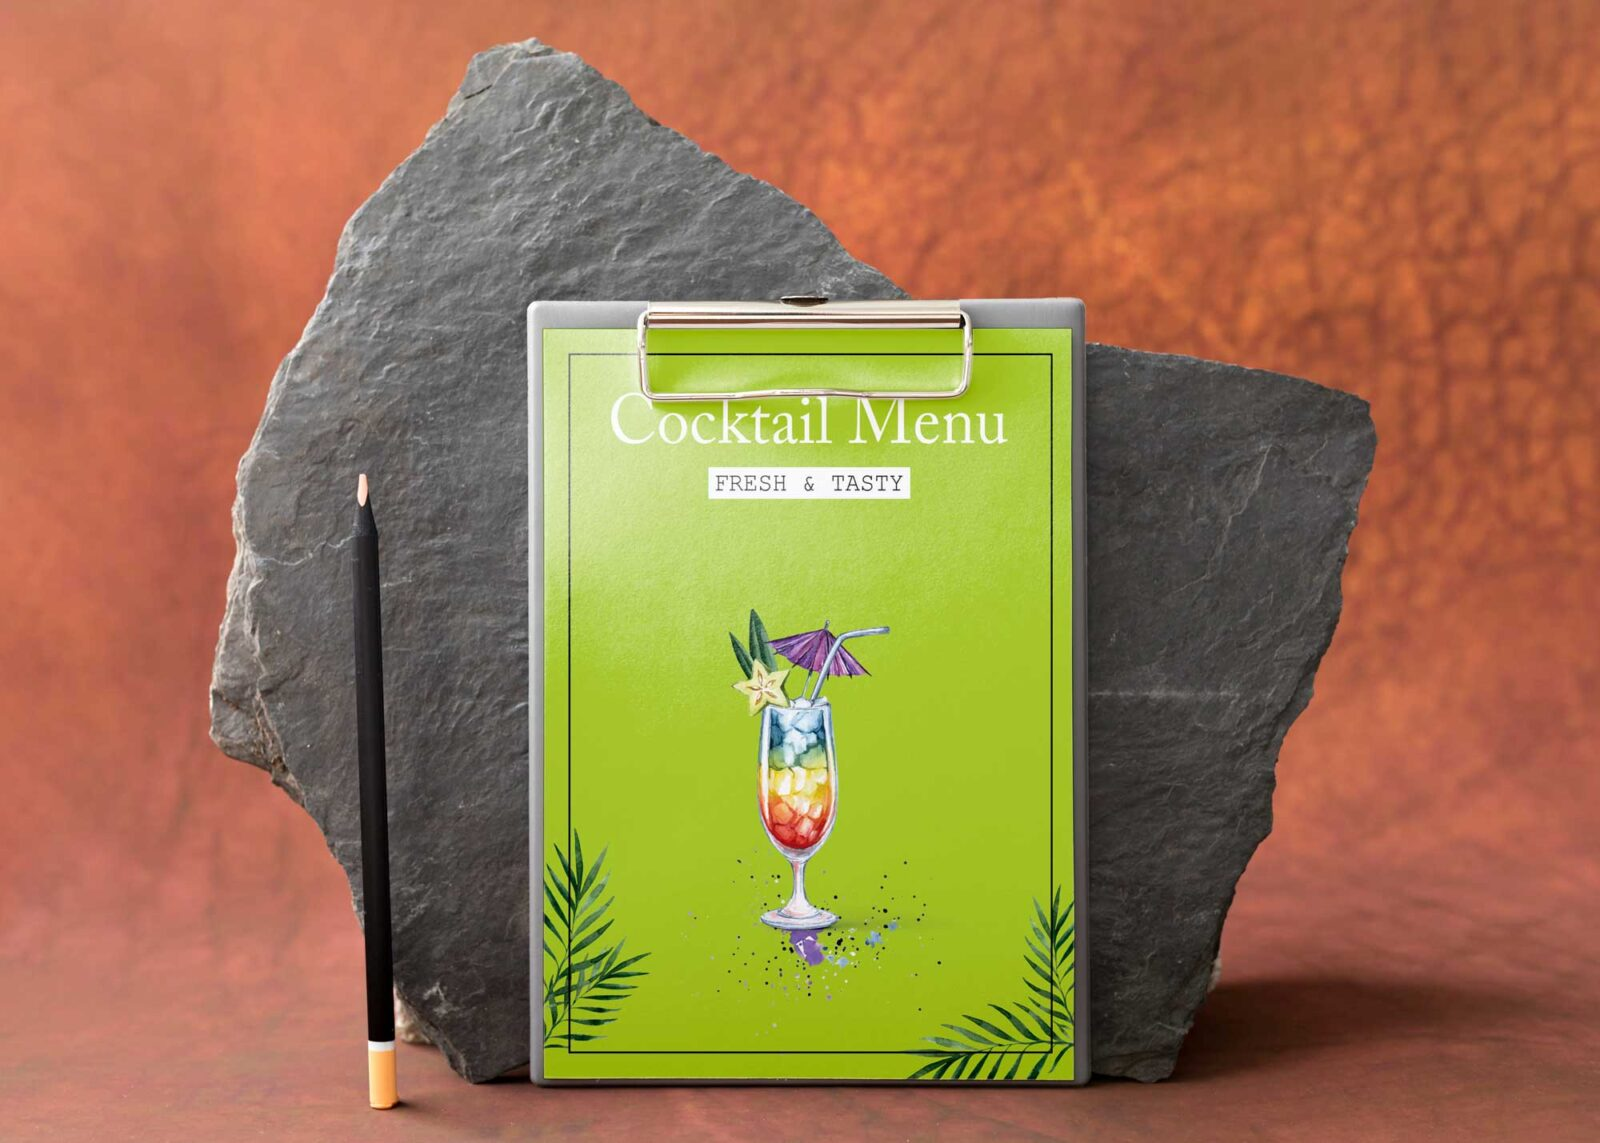 Summer Cocktail Drinks Menu Design